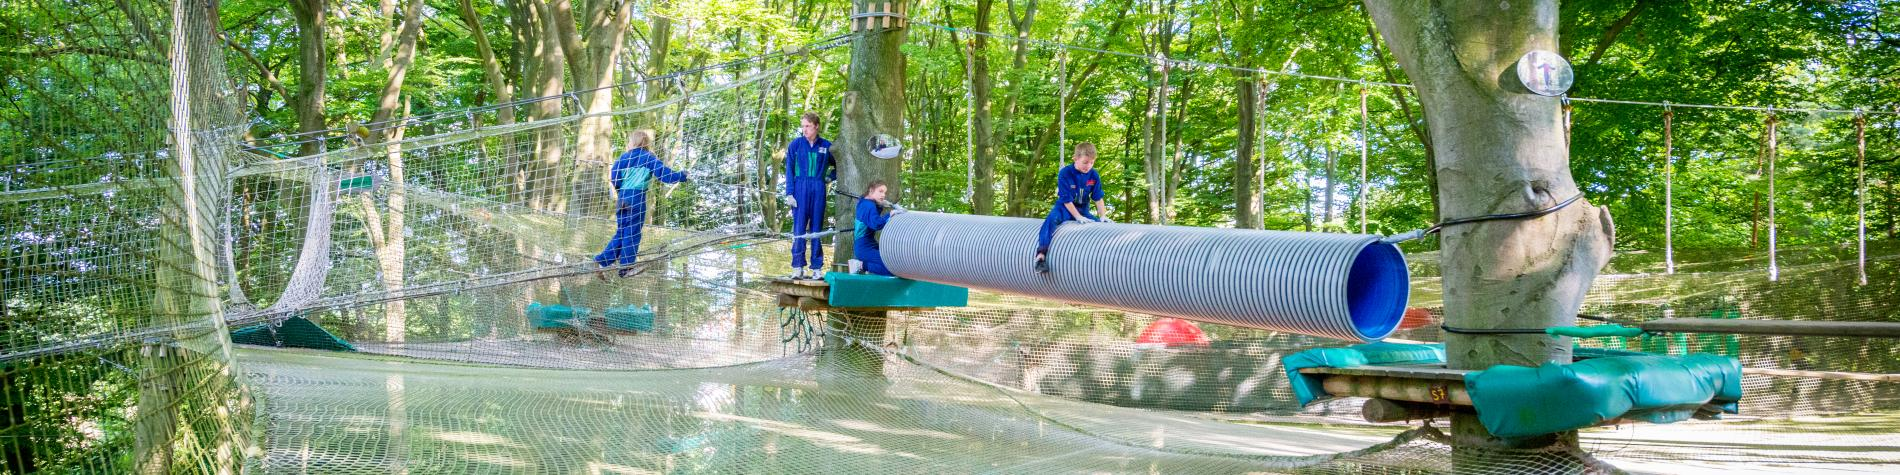 The Aventure Parc Wavre, a trendy theme park near Brussels